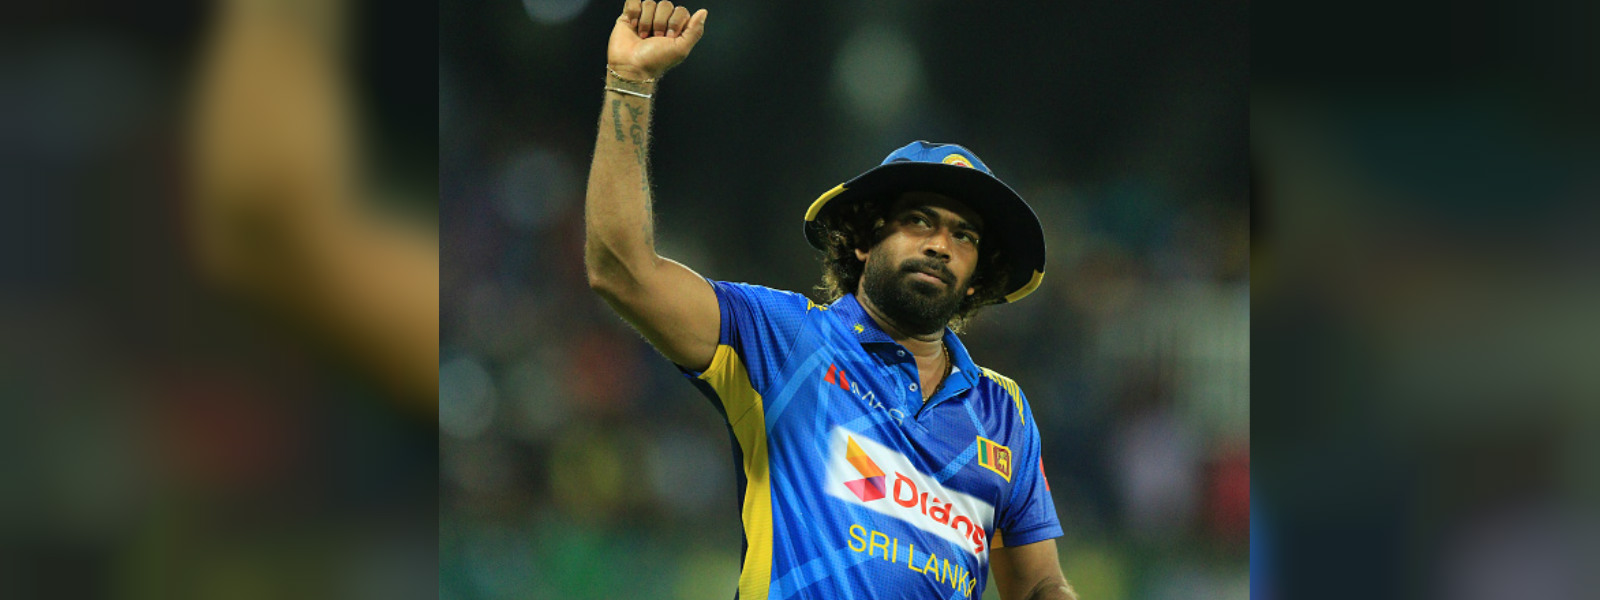 Lasith Malinga bids farewell to his ODI career